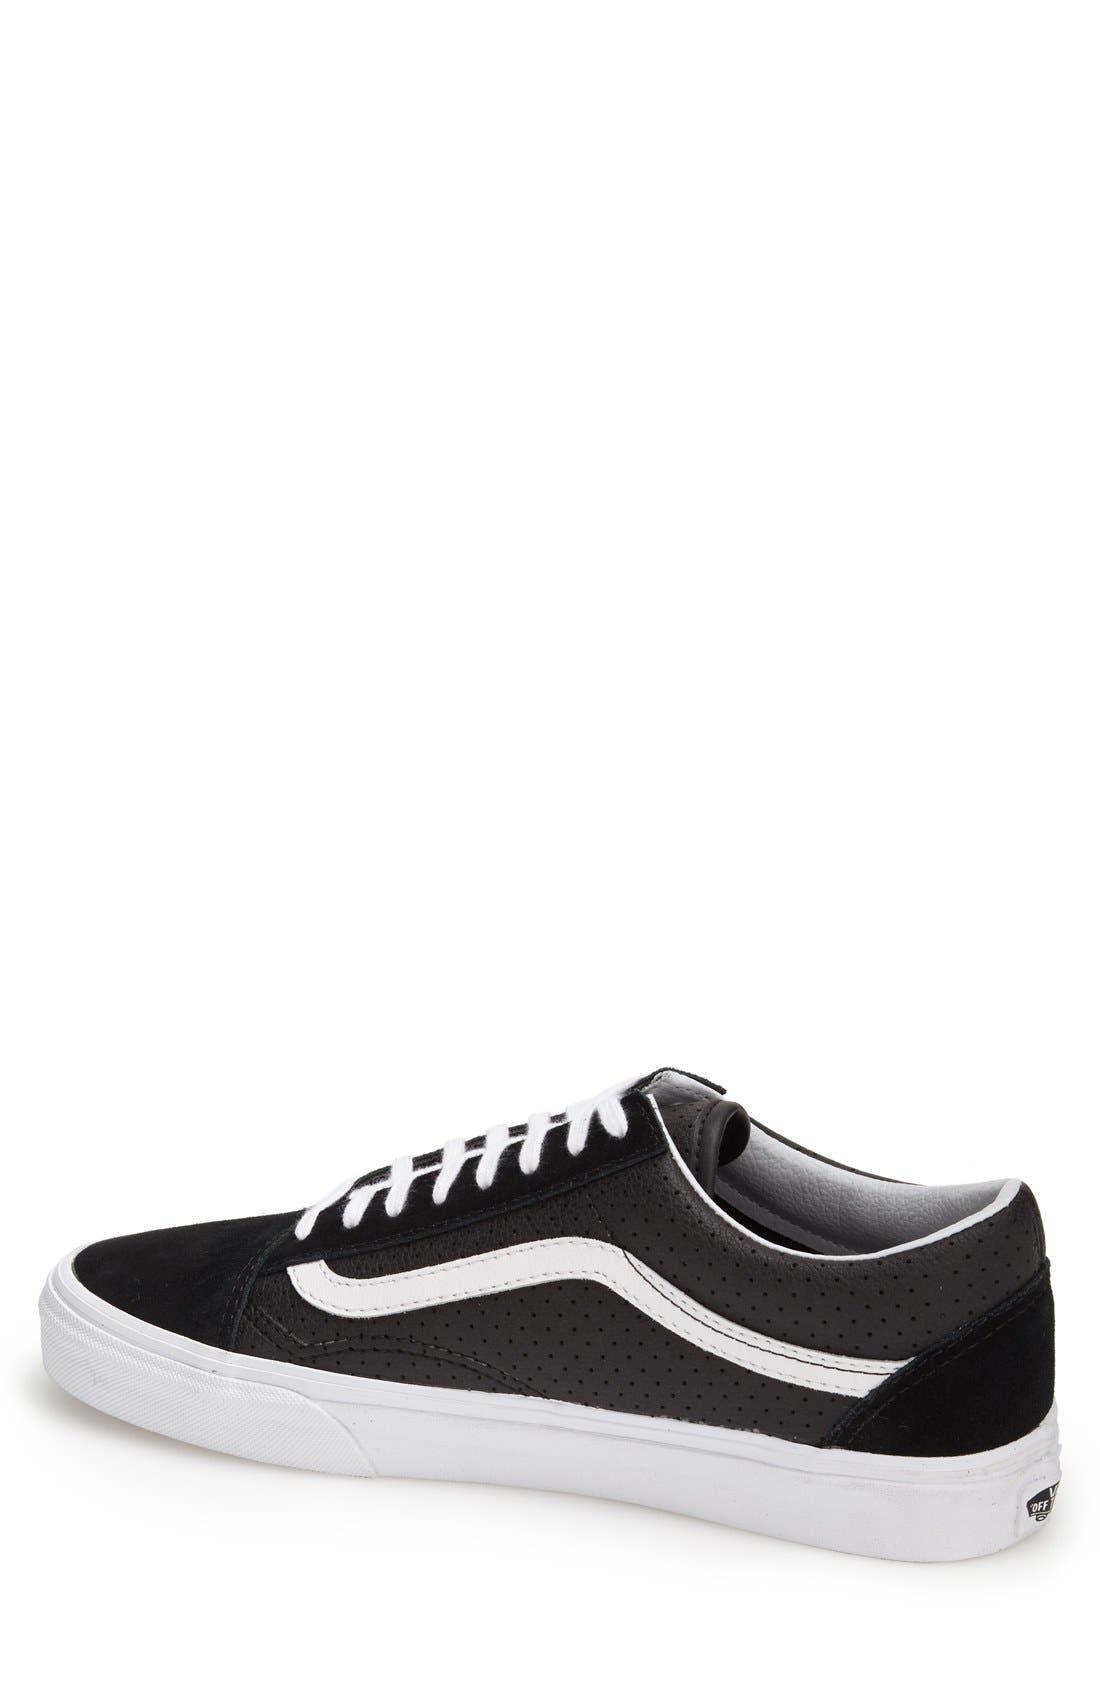 Alternate Image 3  - Vans 'Old Skool' Sneaker (Men) (Nordstrom Exclusive)